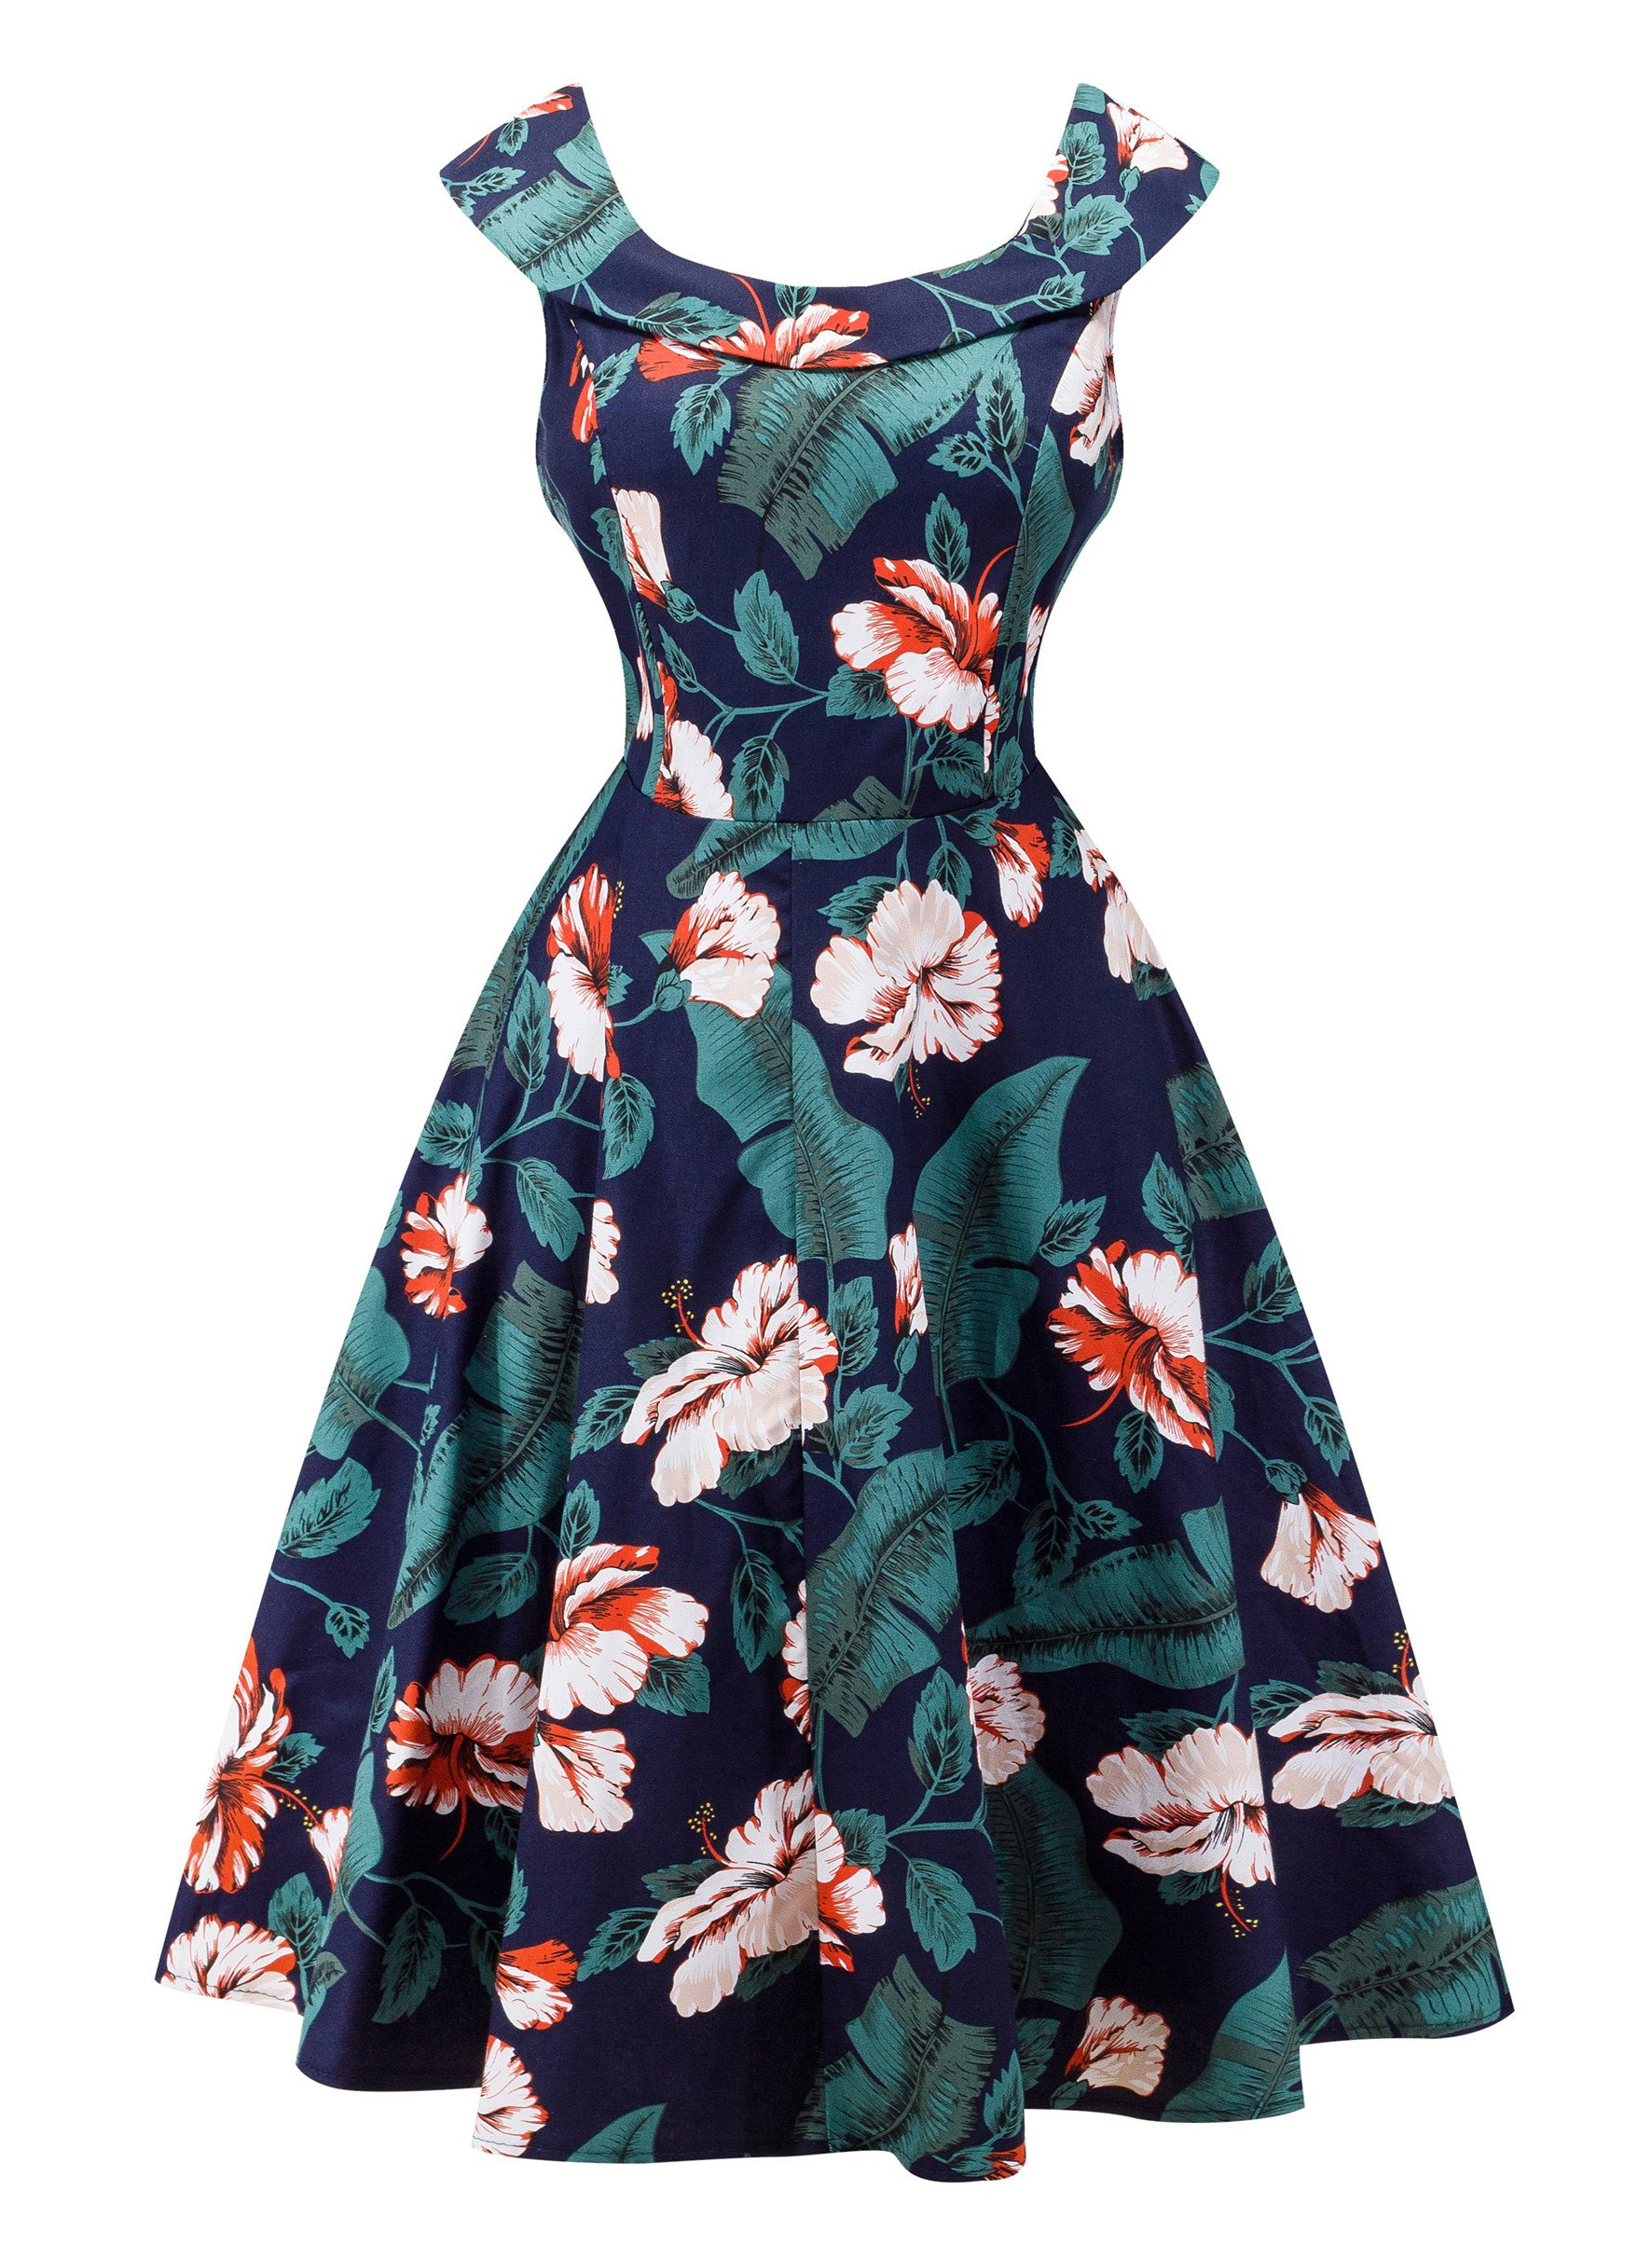 Angerella Vintage 50s Party Cocktail Dresses Sleeveless